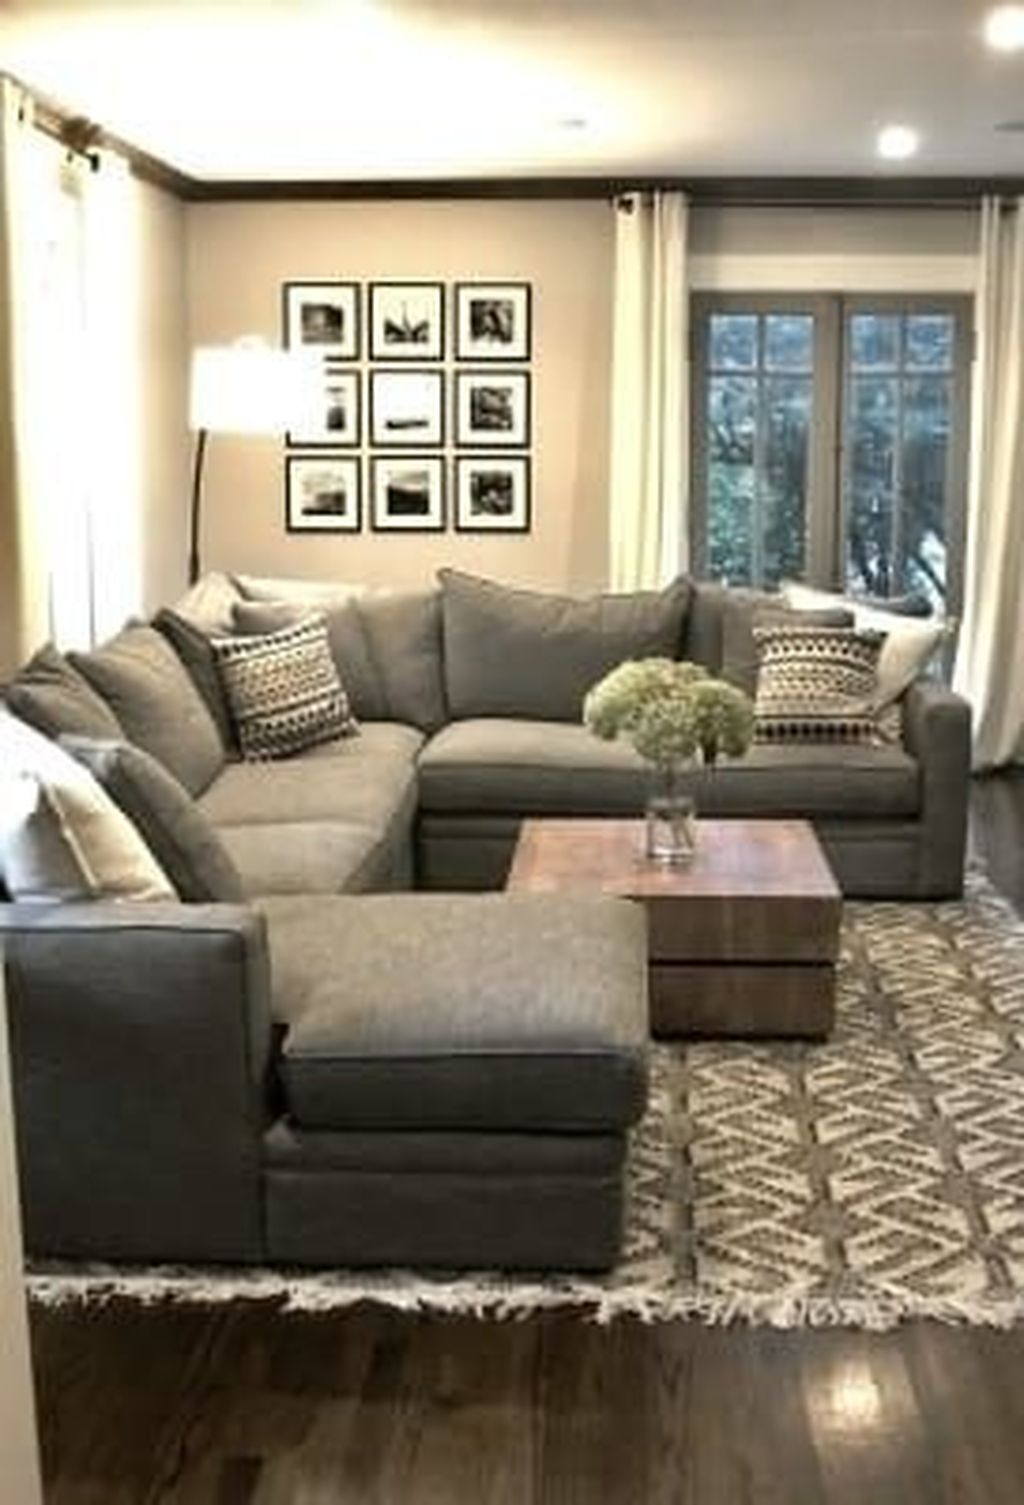 Graceful Living Room Design Ideas That You Need To Try 40